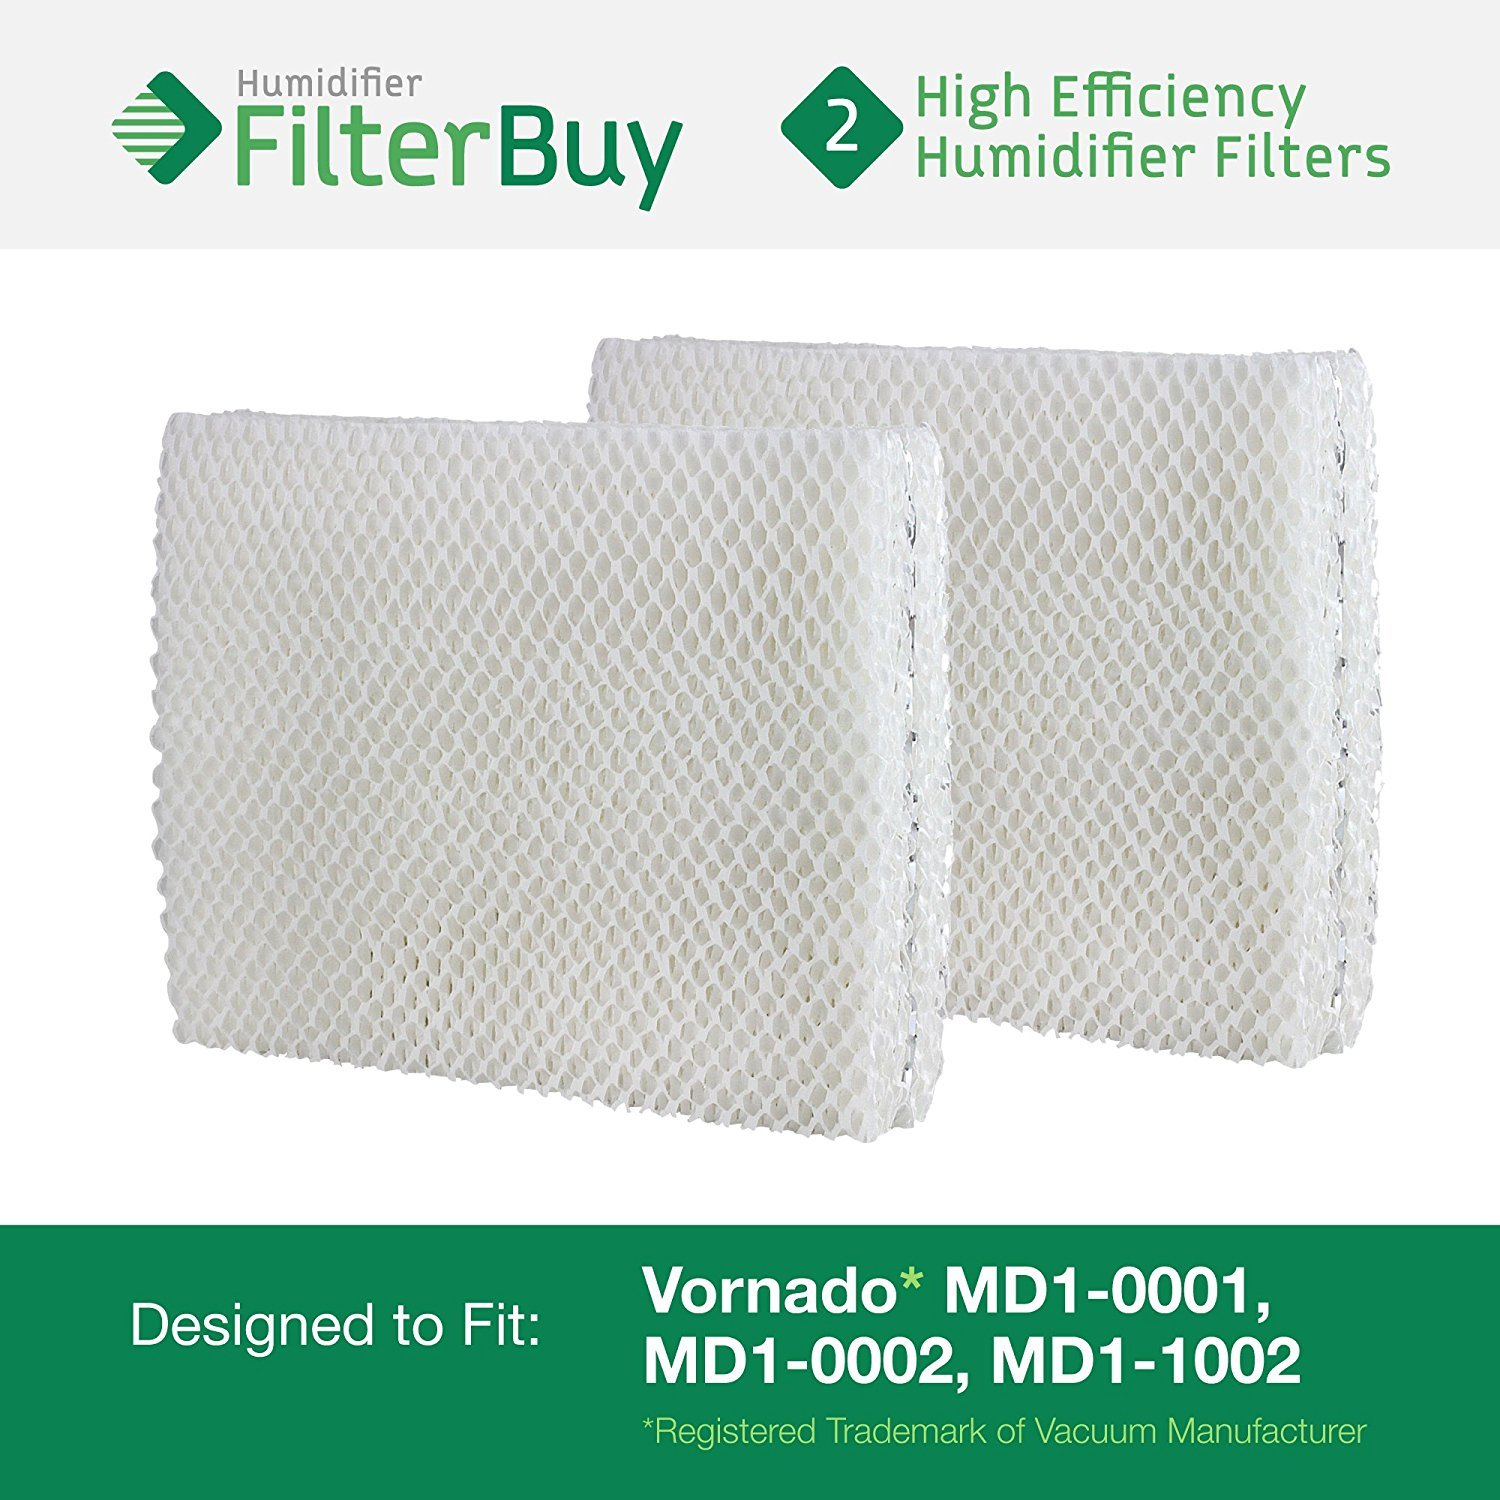 Vornado MD1-0001, MD1-0002, MD1-1002 Humidifier Wick Filter. Designed by FilterBuy to fit all Vornado Evaporative Humidifiers. Pack of 2 Filters. HF-VMD1pk2